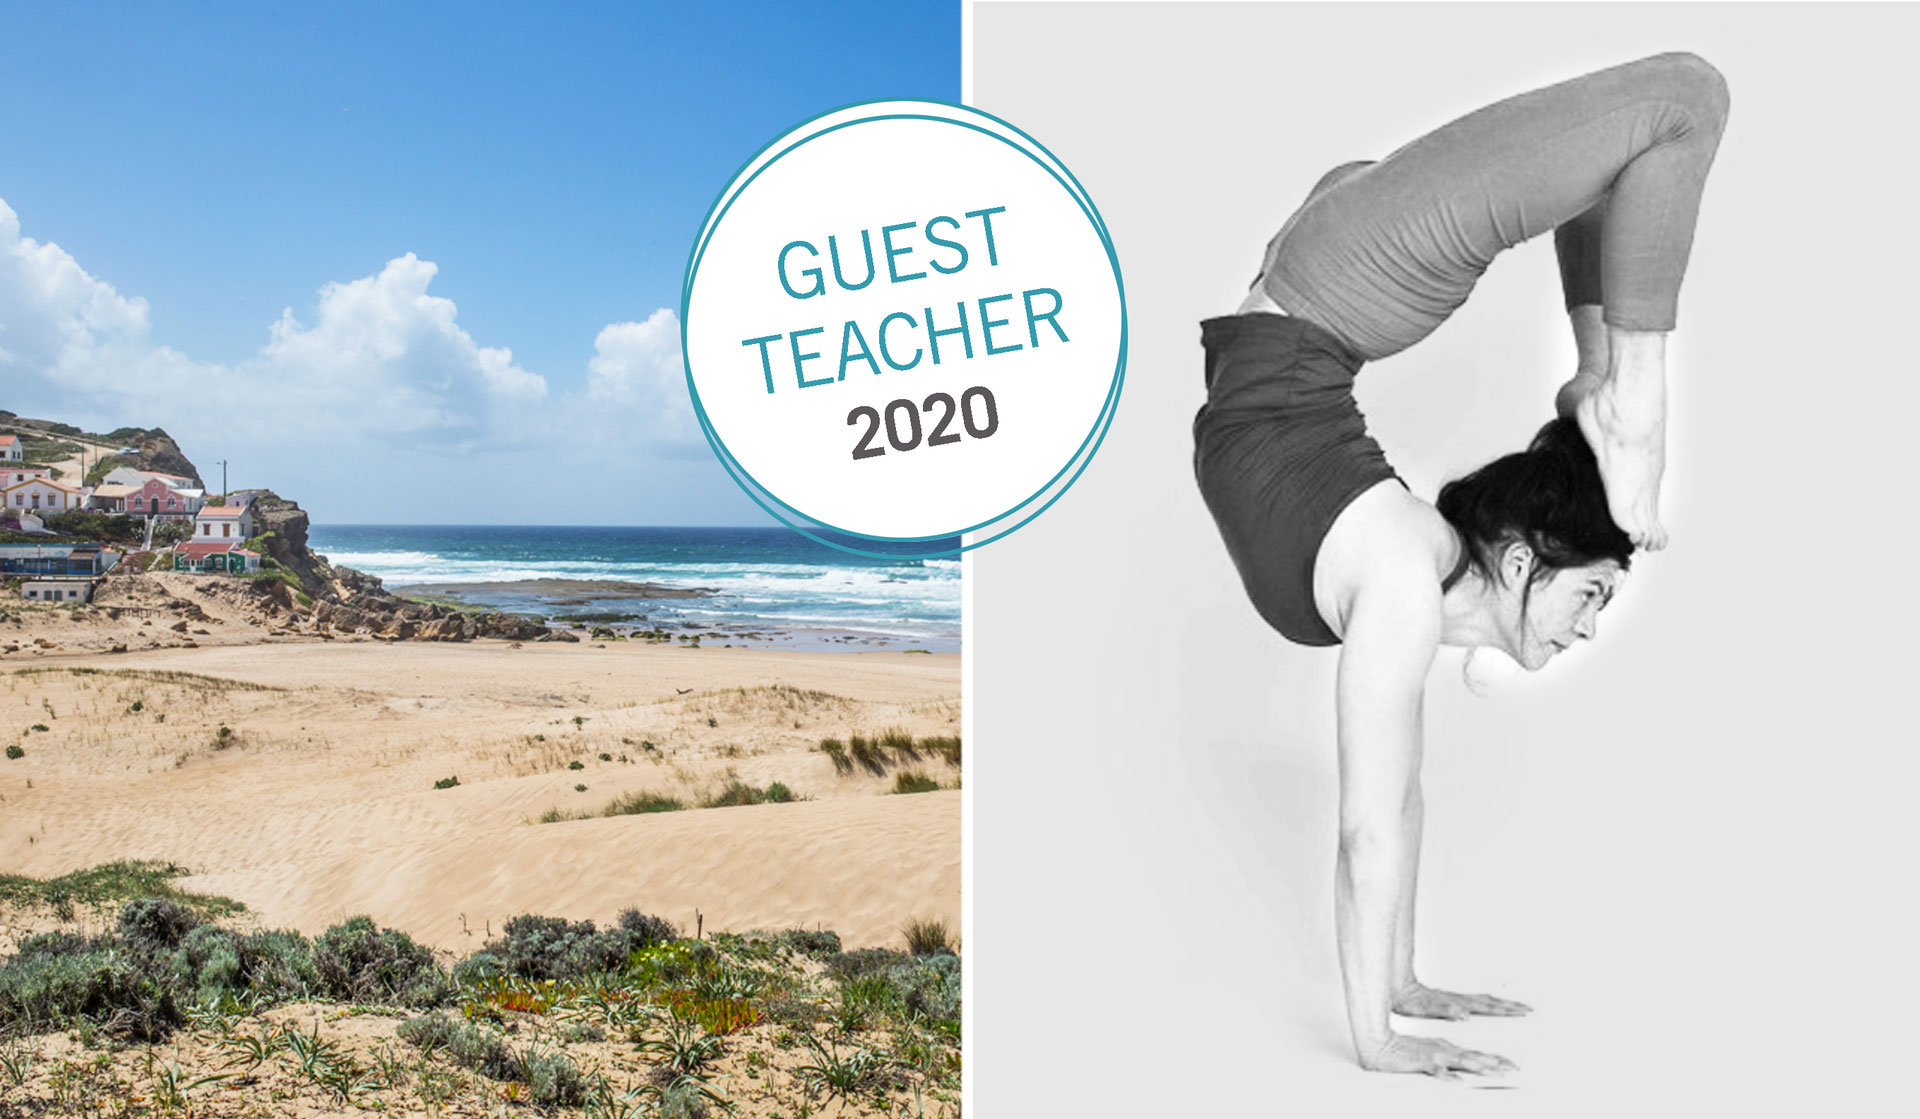 ASHTANGA YOGA WORKSHOP WITH ANNA ROSSOW SEPTEMBER 2019 IN